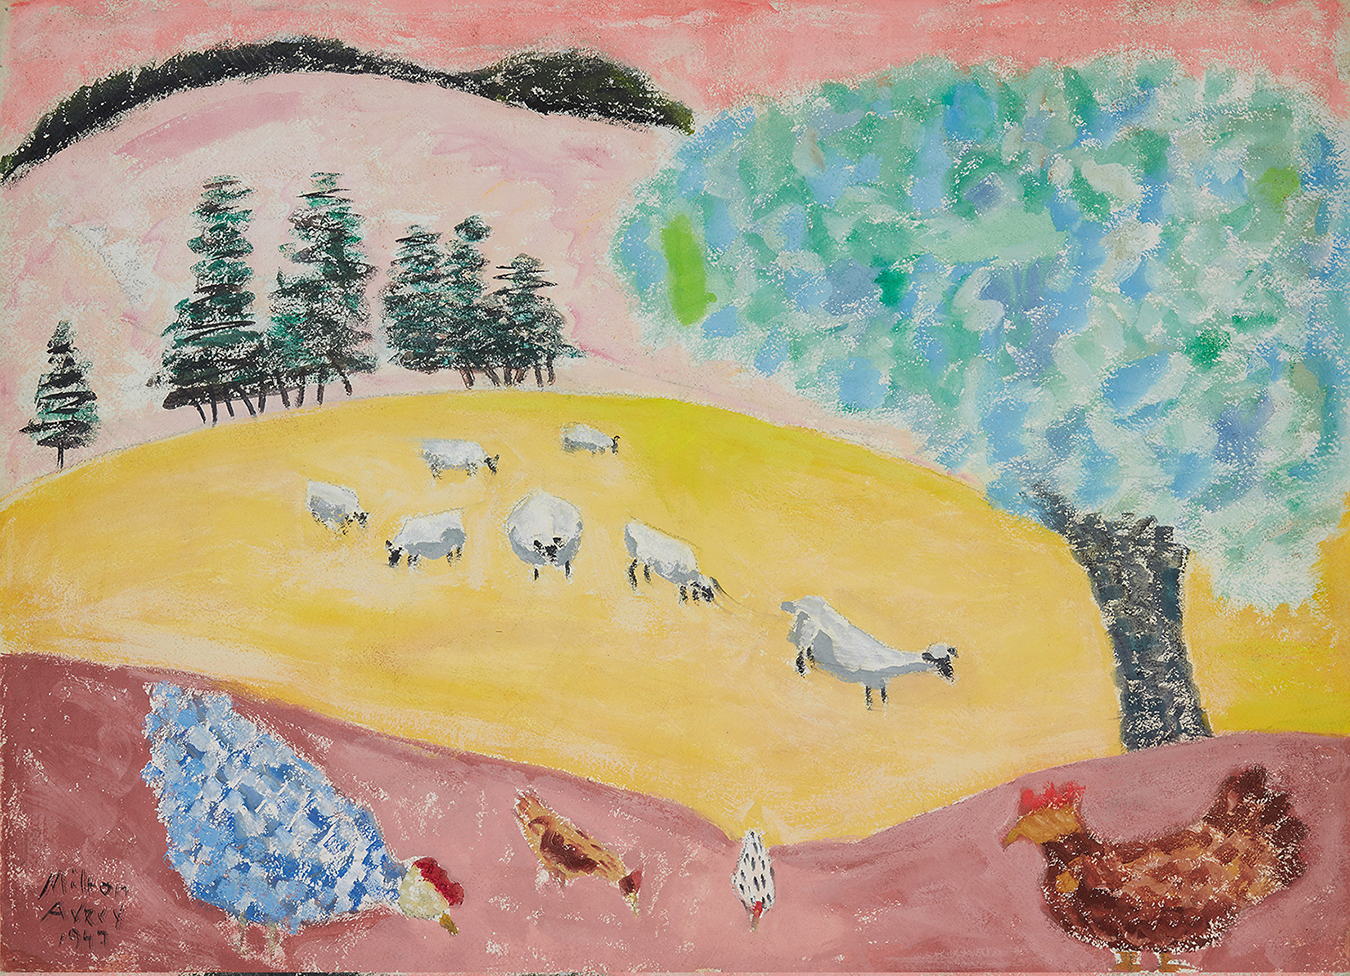 Milton Avery's colorful landscape of pinks, yellows, blues, and greens with sheep and chickens grazing.